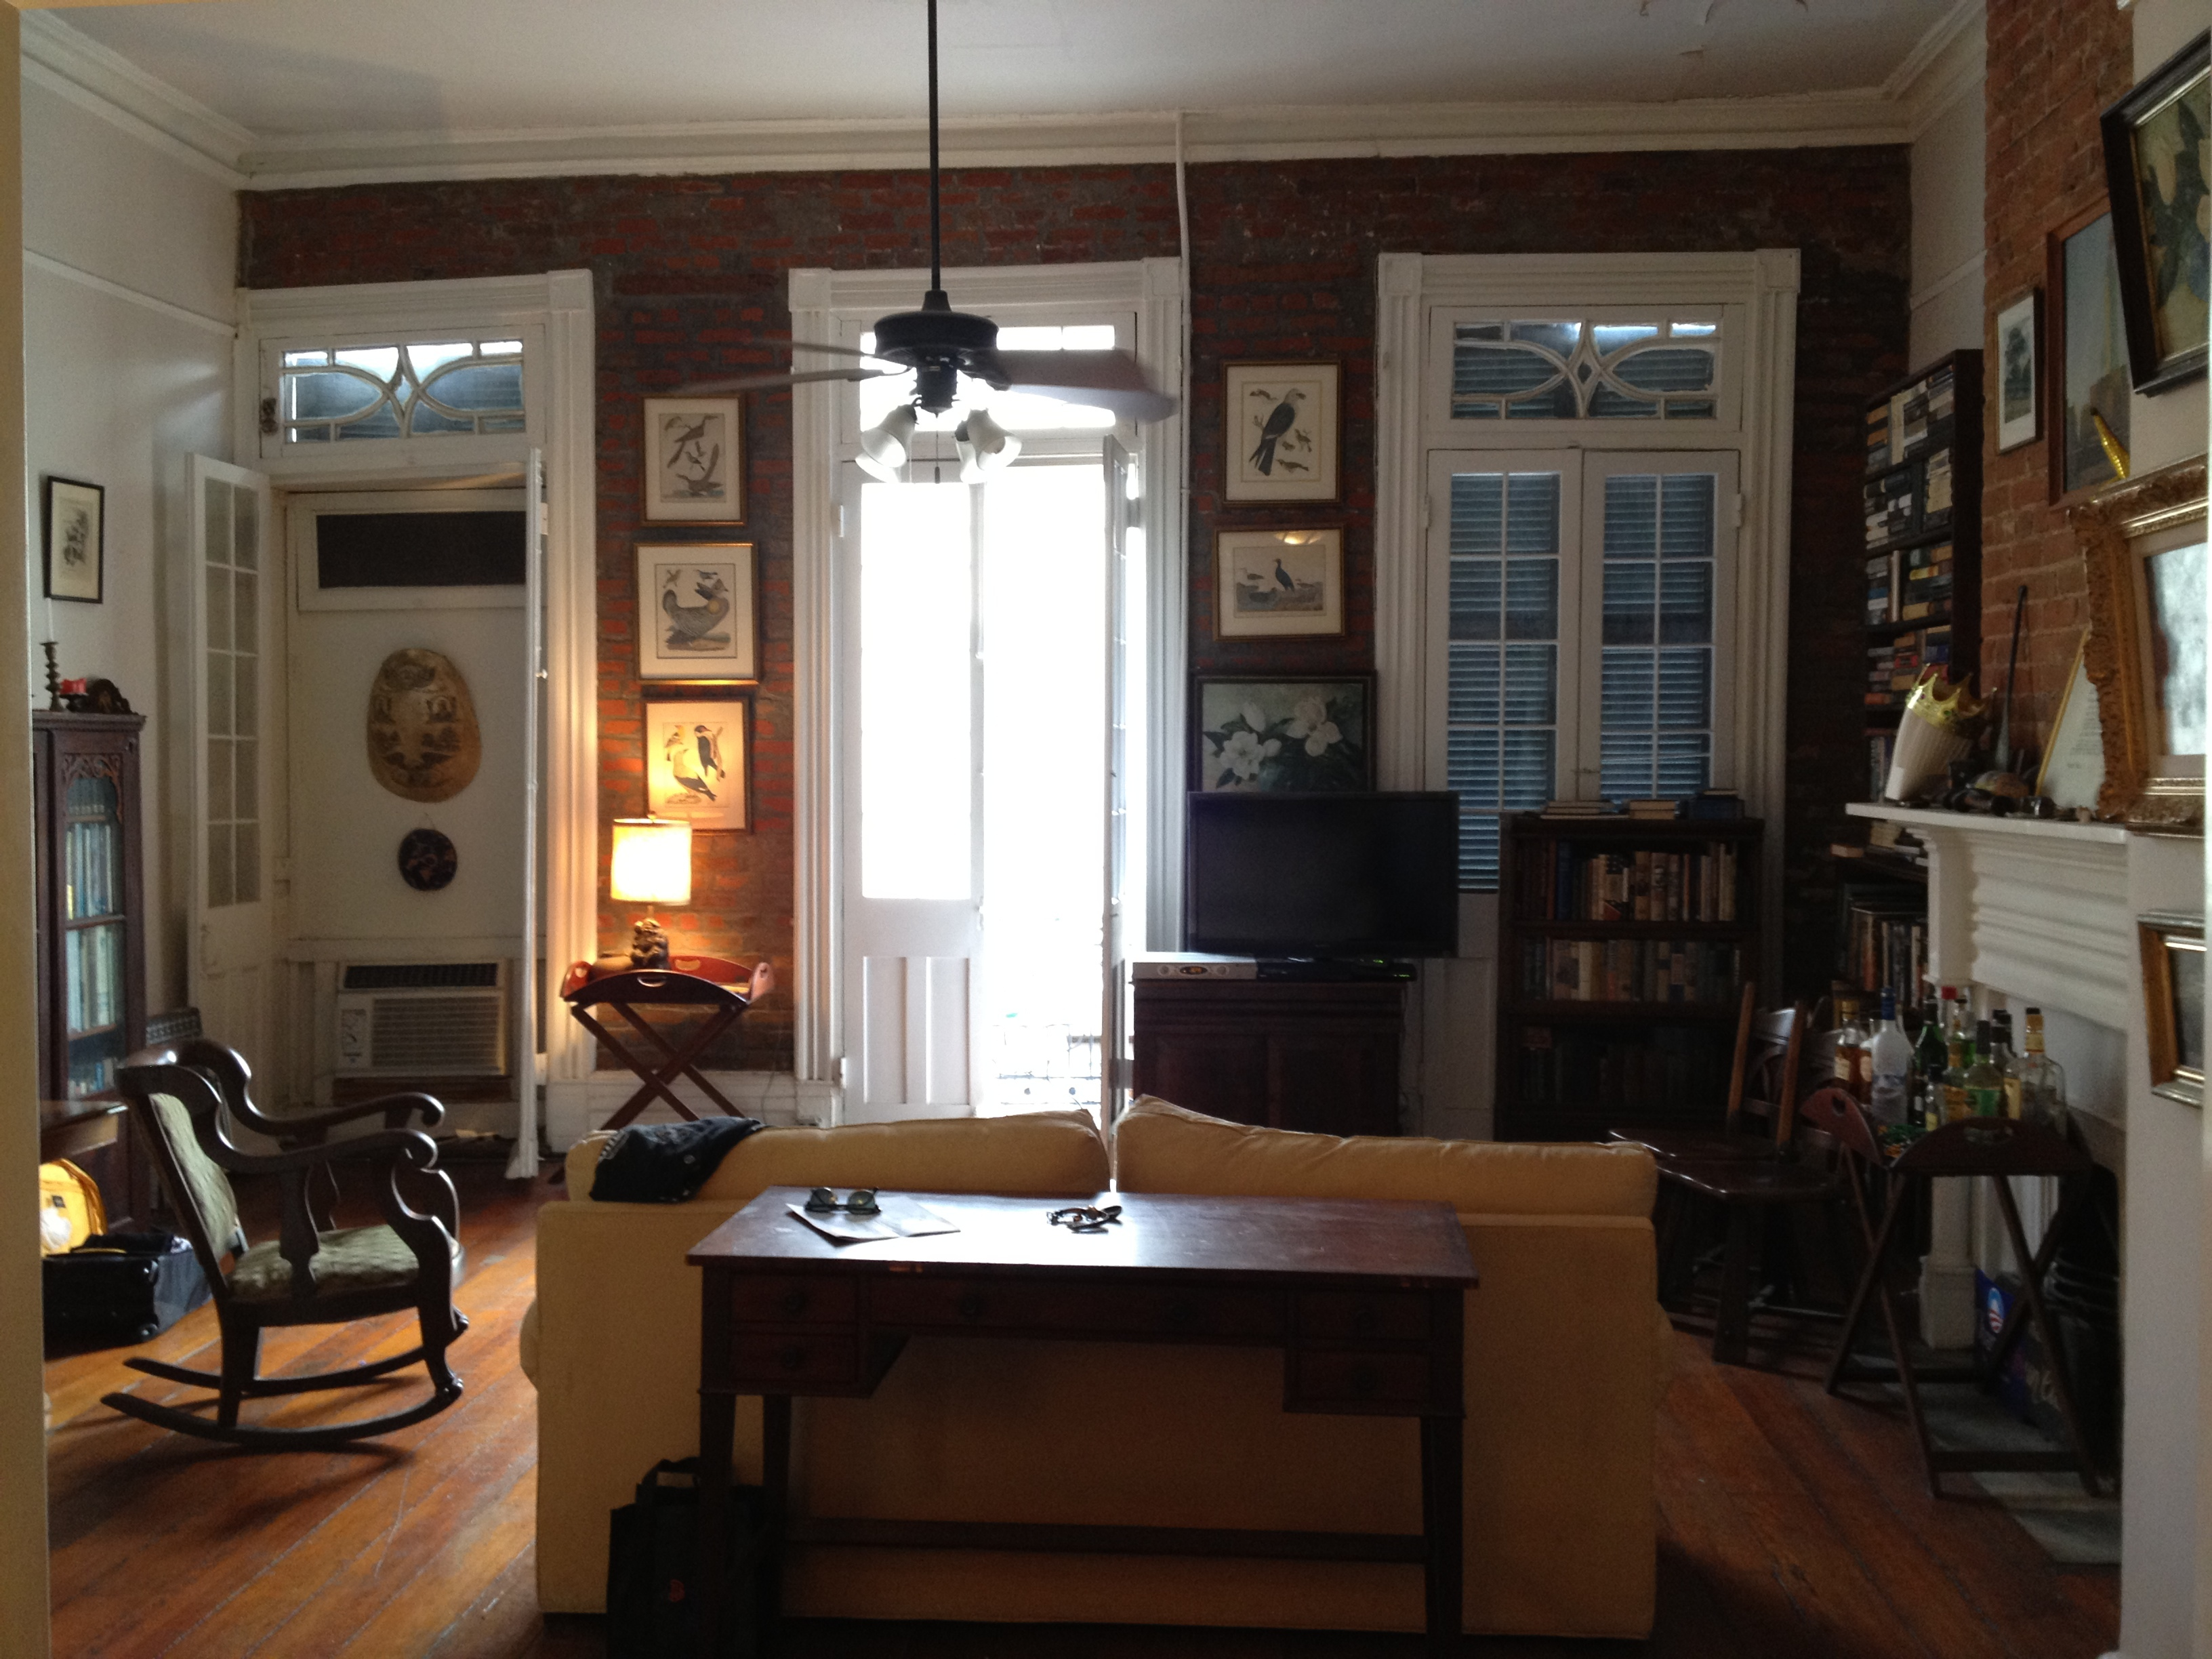 File:New Orleans French Quarter Apartment Living Room 2